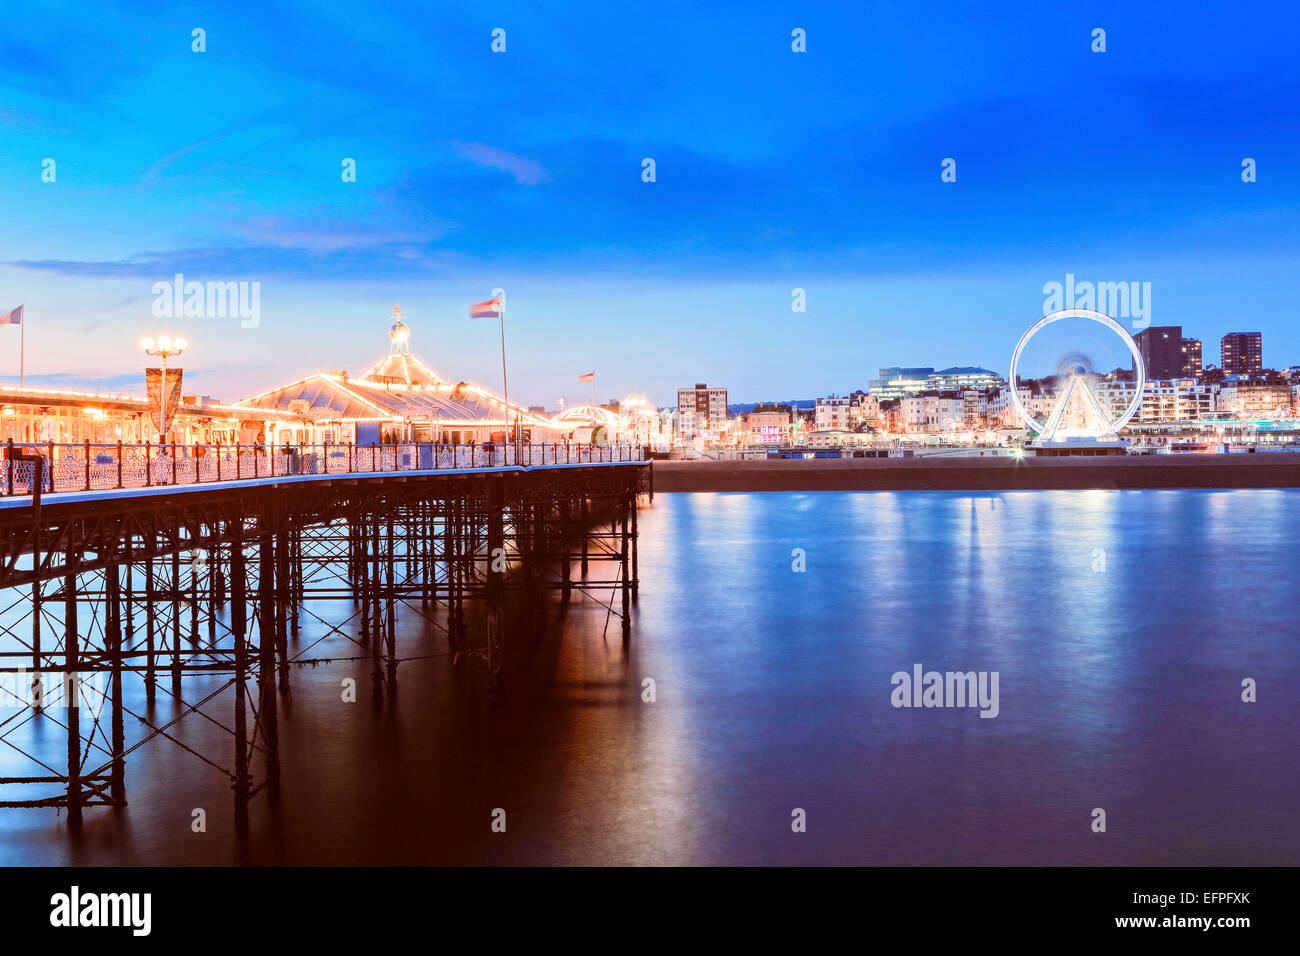 The Palace Pier (Brighton Pier) at dusk, Brighton, East Sussex, England, United Kingdom, Europe - Stock Image